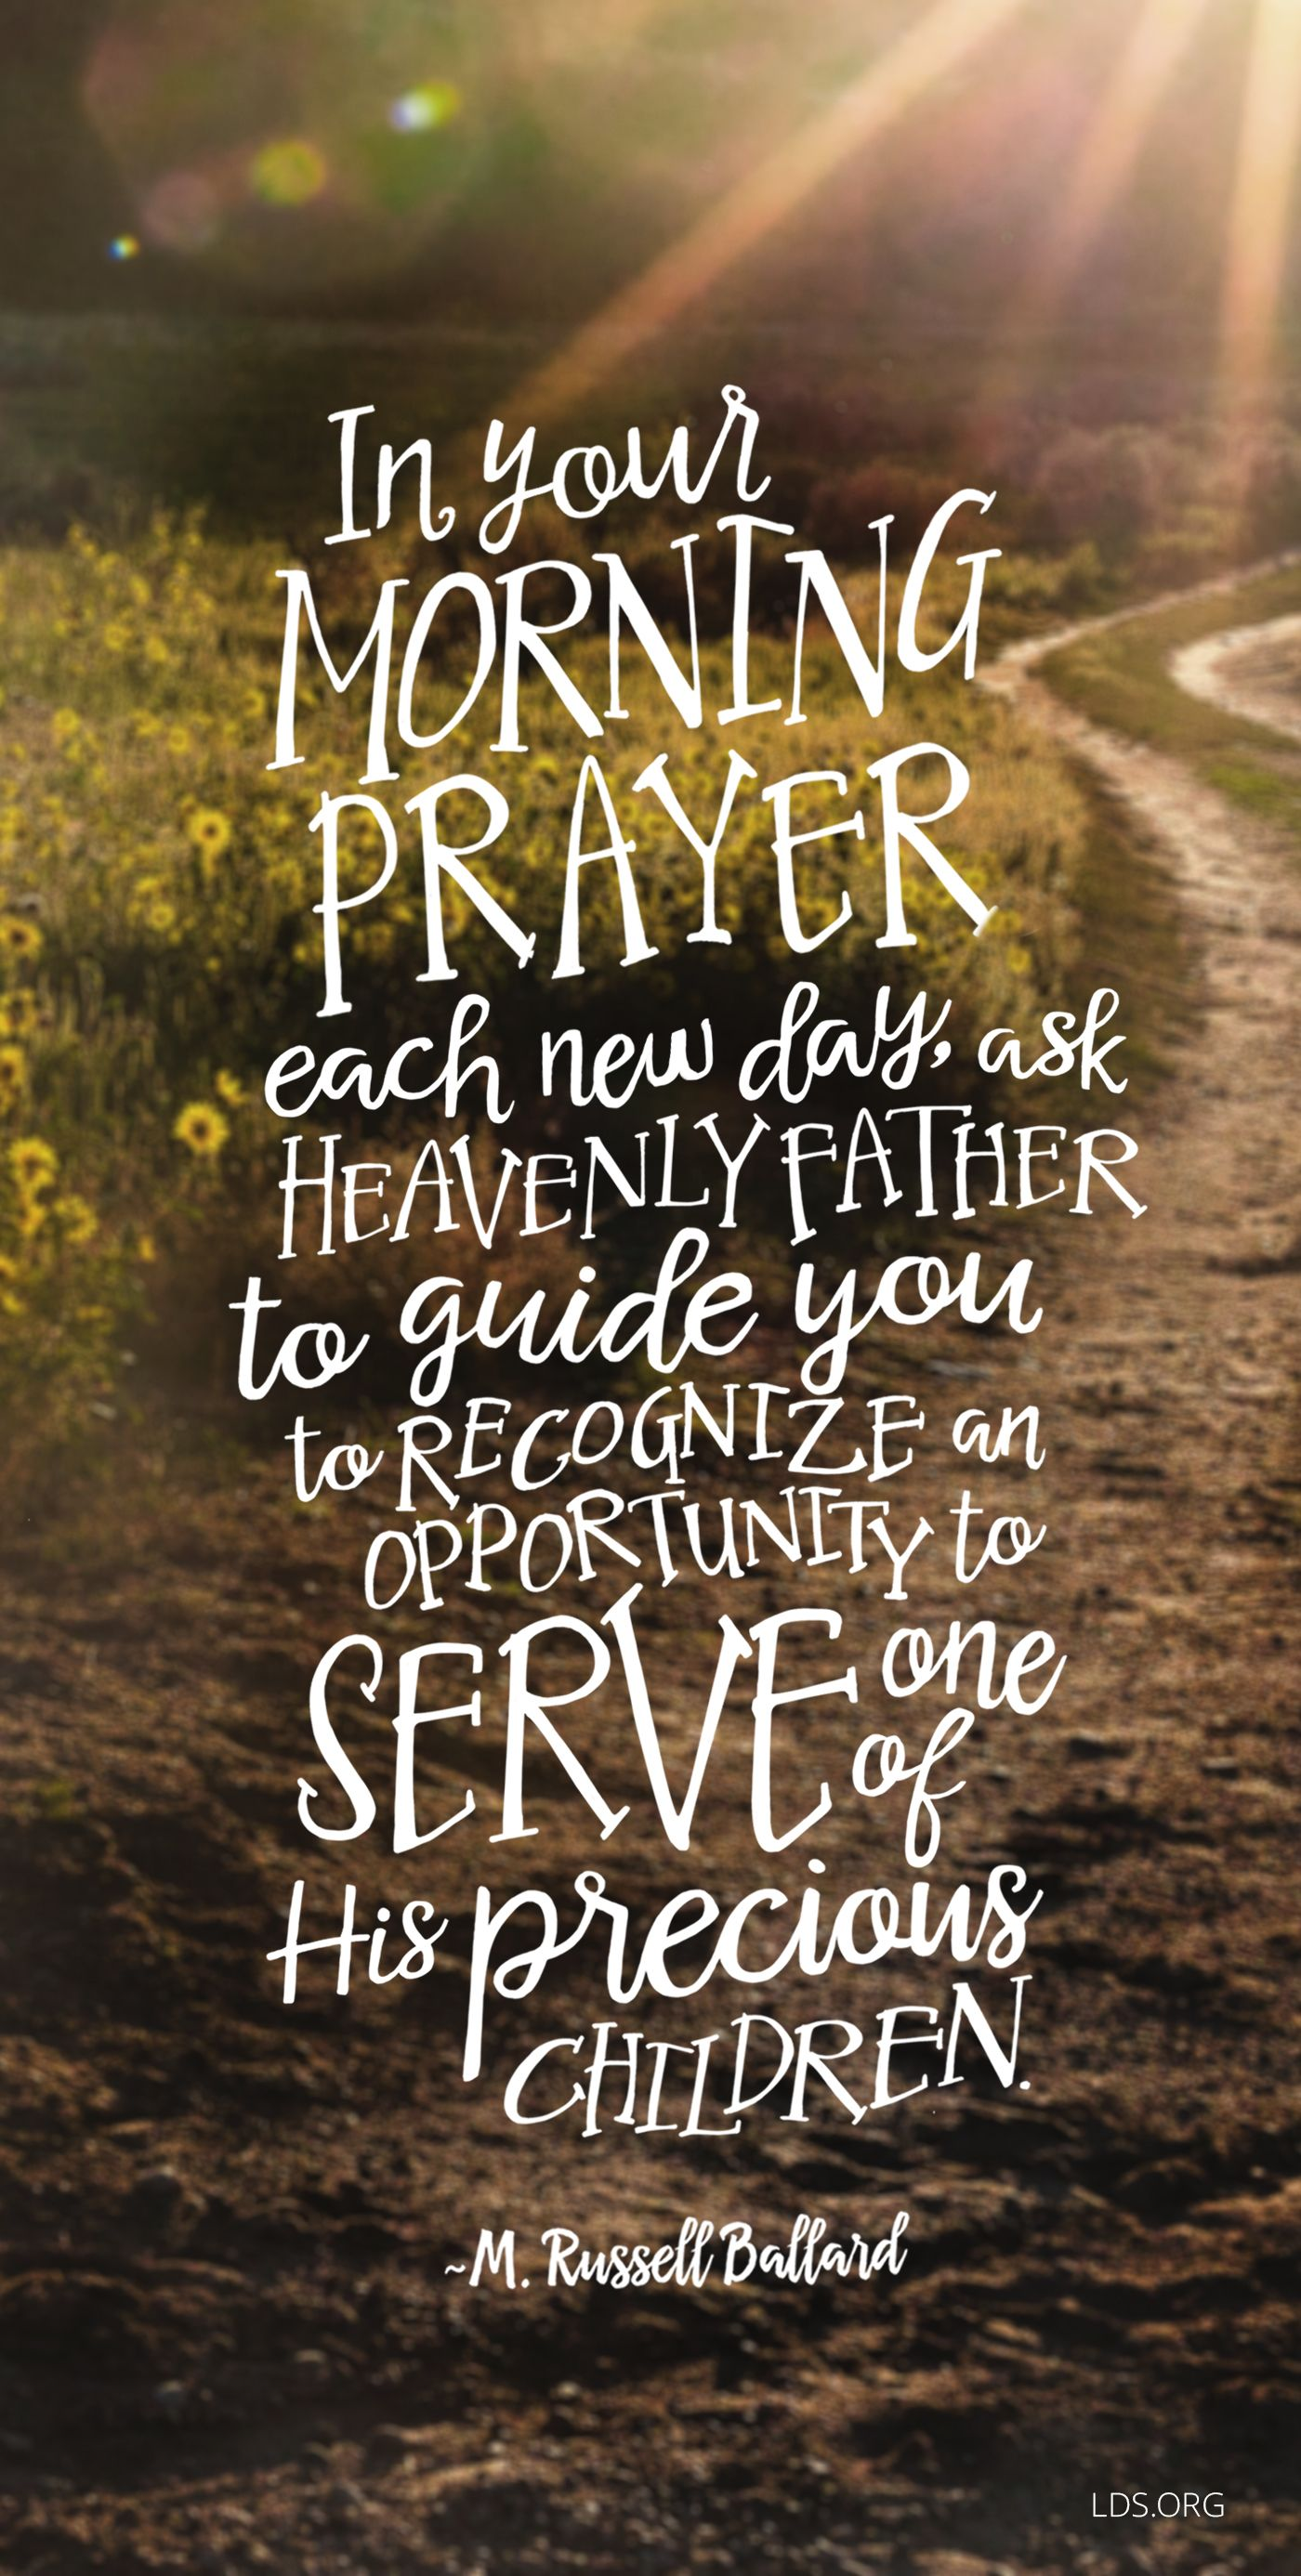 In your morning prayers each day, ask Heavenly Father to